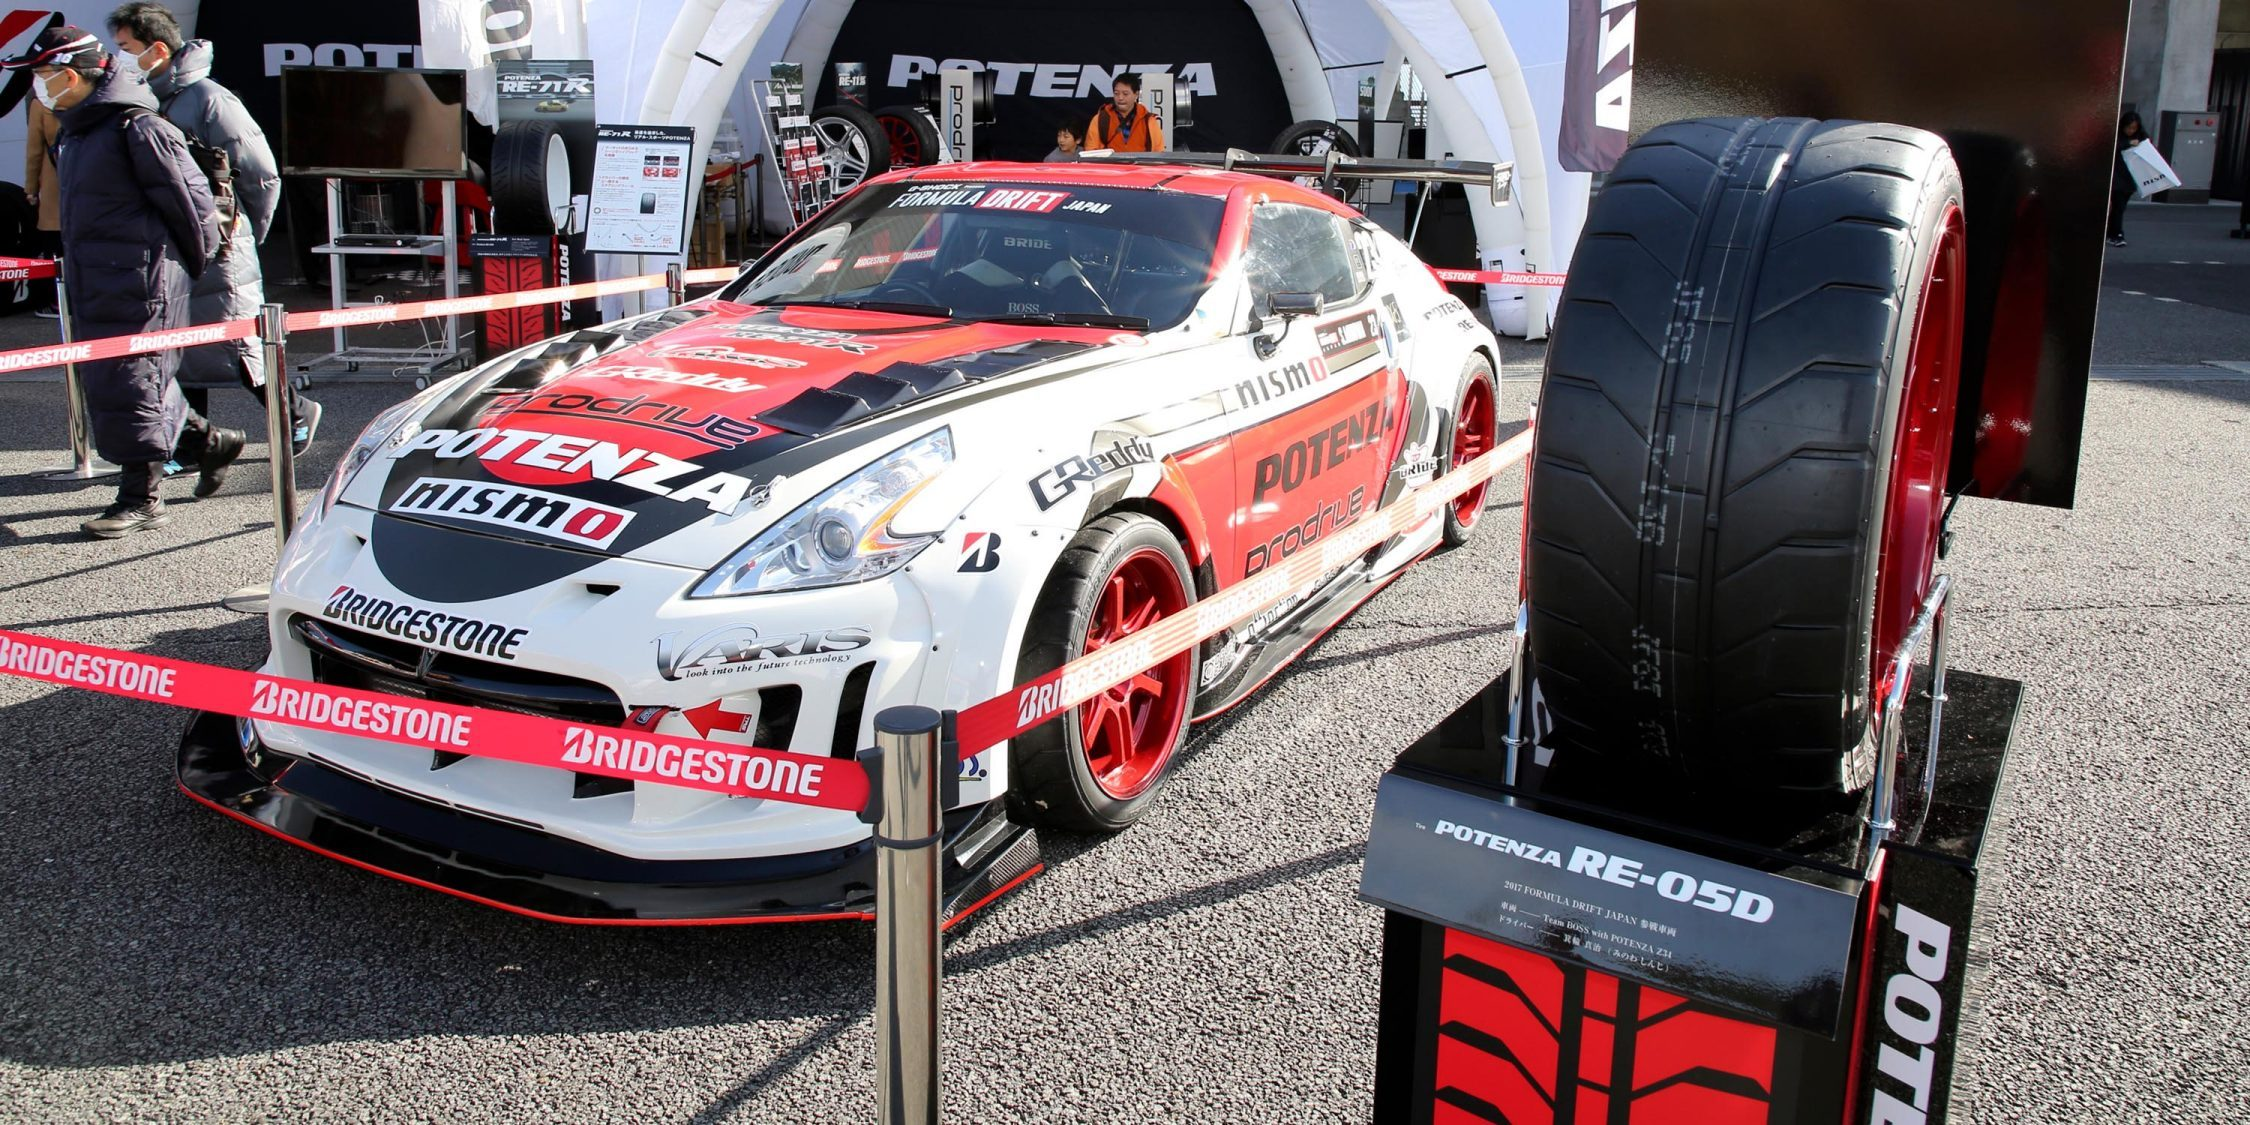 Nissan 370Z NISMO on display